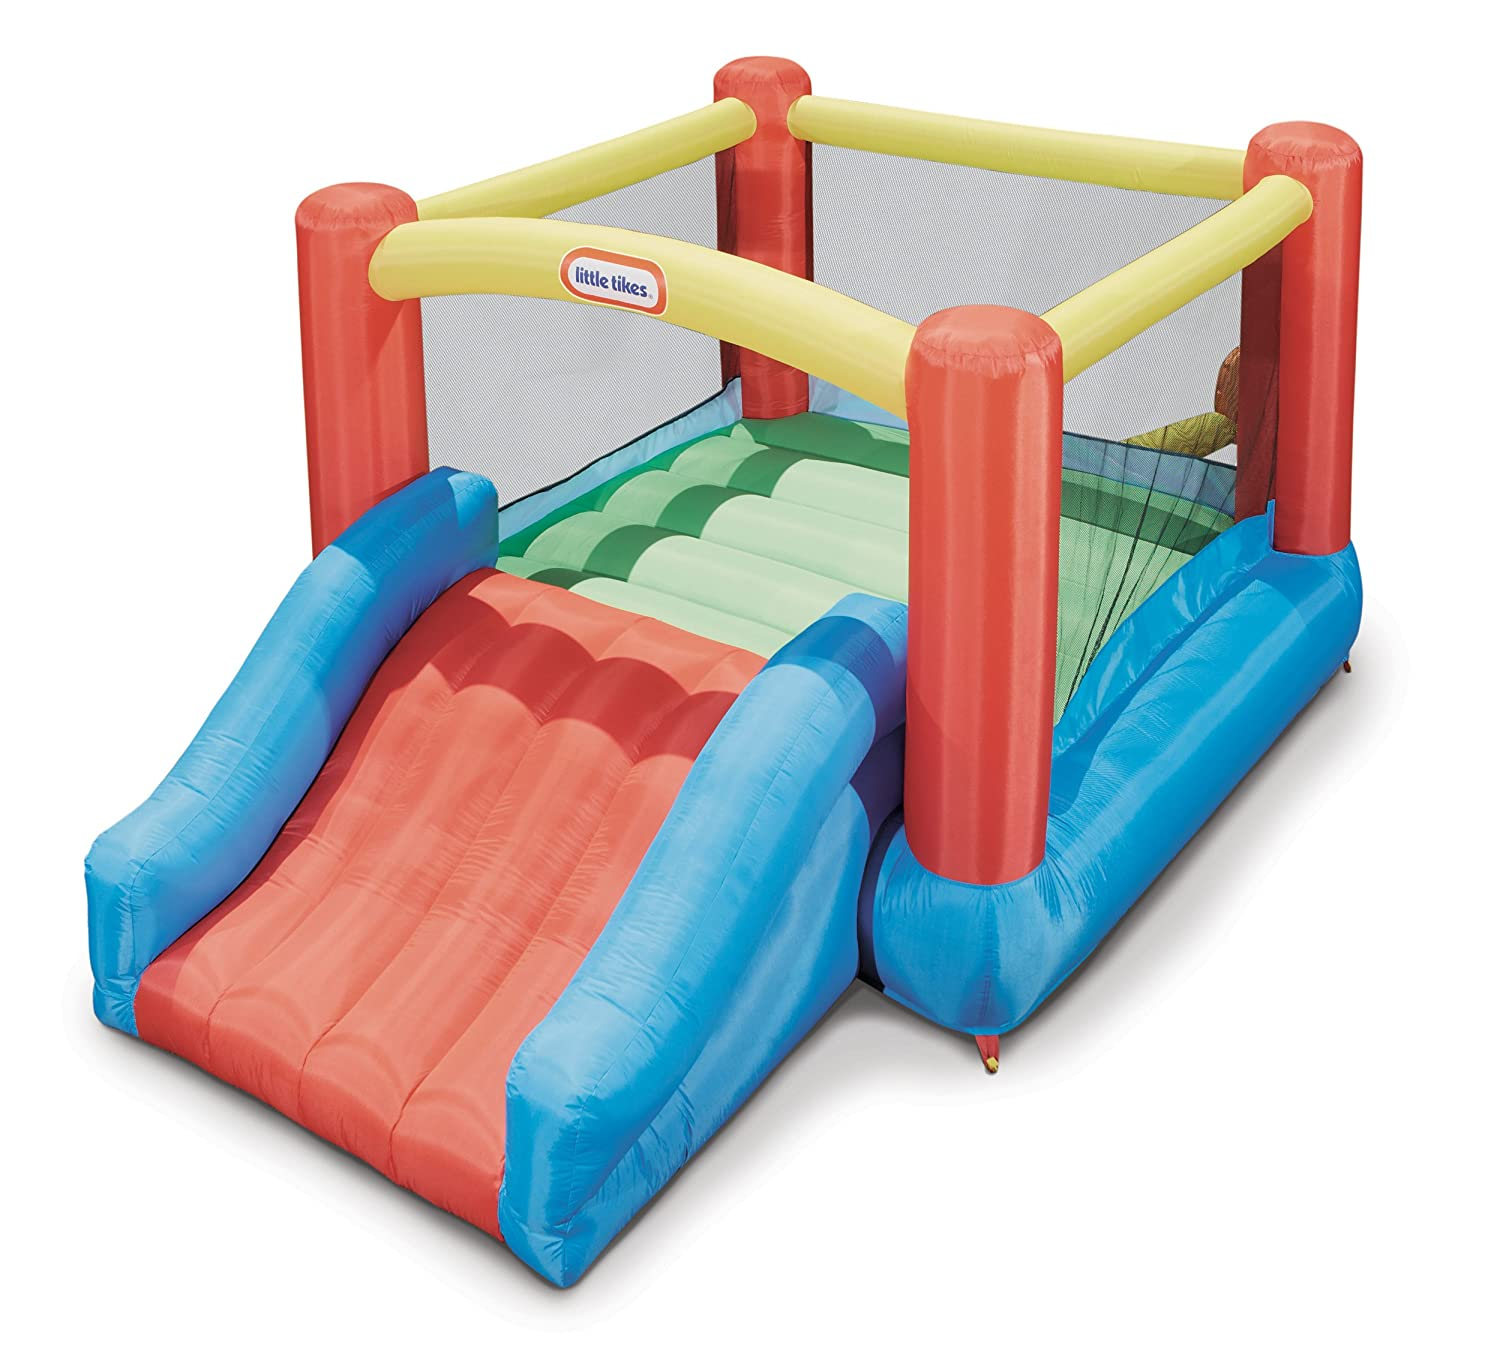 Top 9 Best Bouncing Toys for 1 Year Olds (2020 Updated) 1